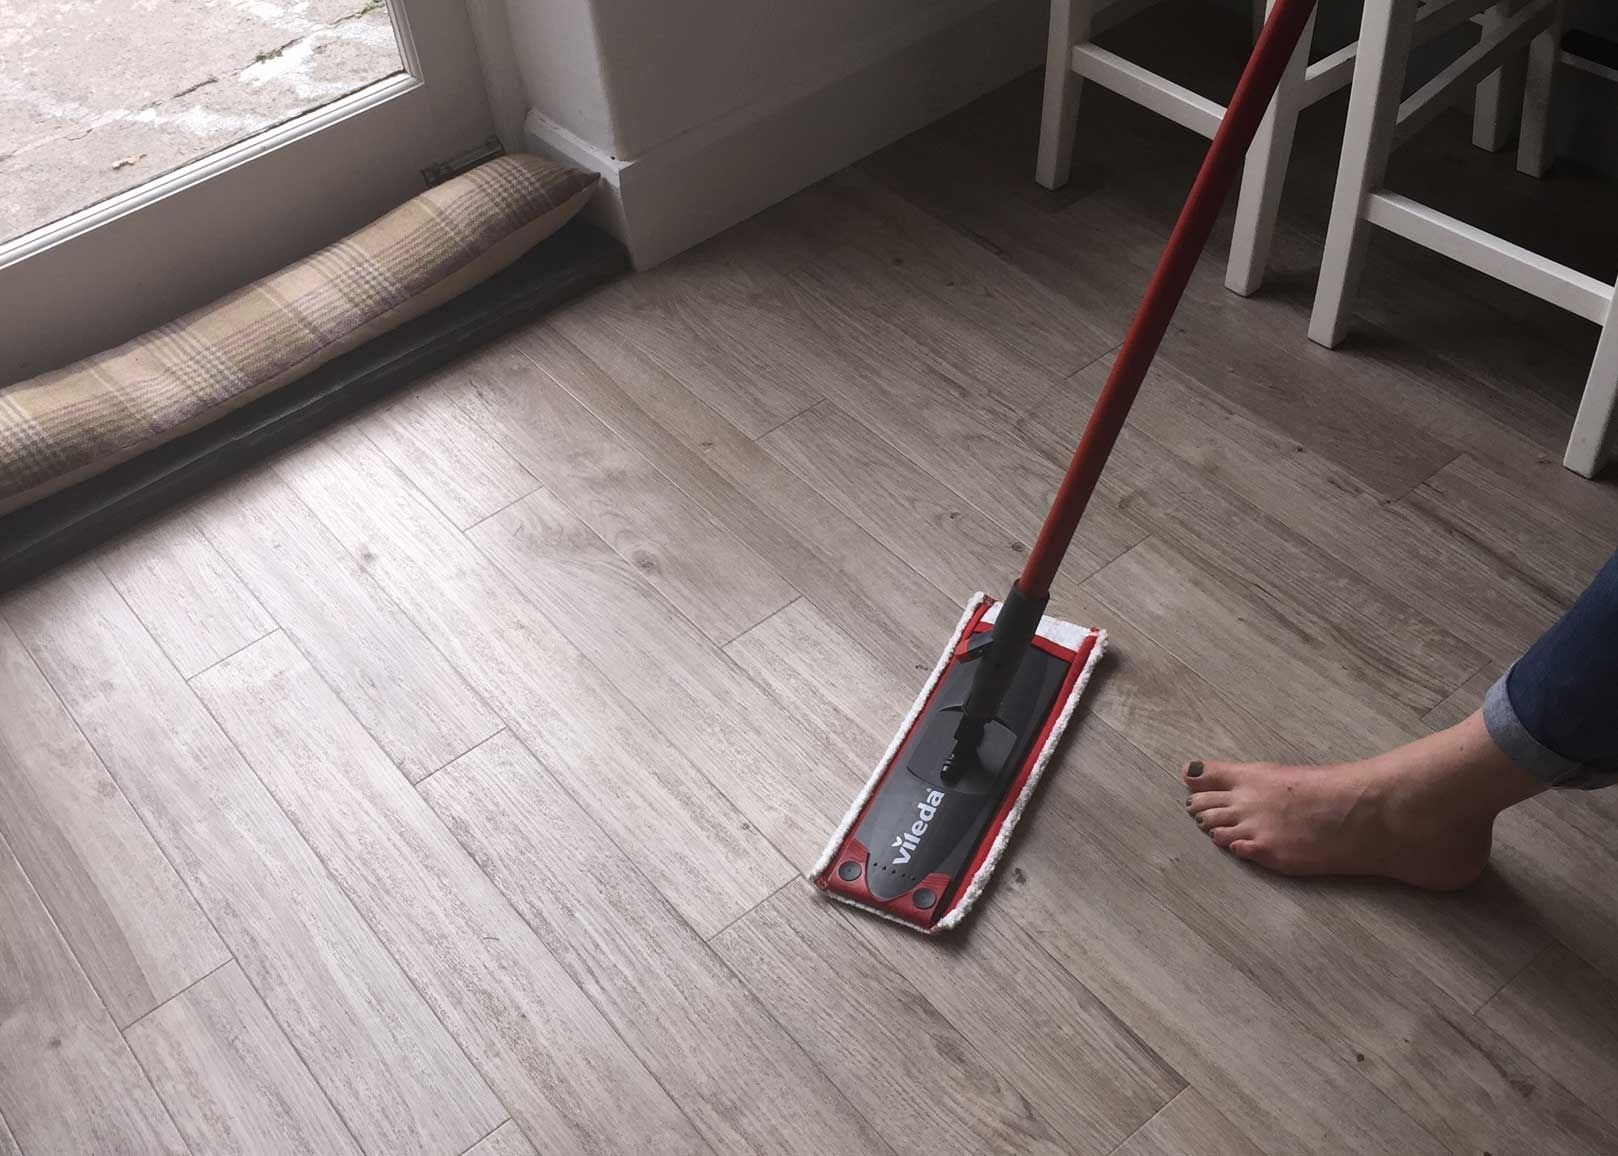 Permalink to Best Floor Mop For Laminate Wood Floors